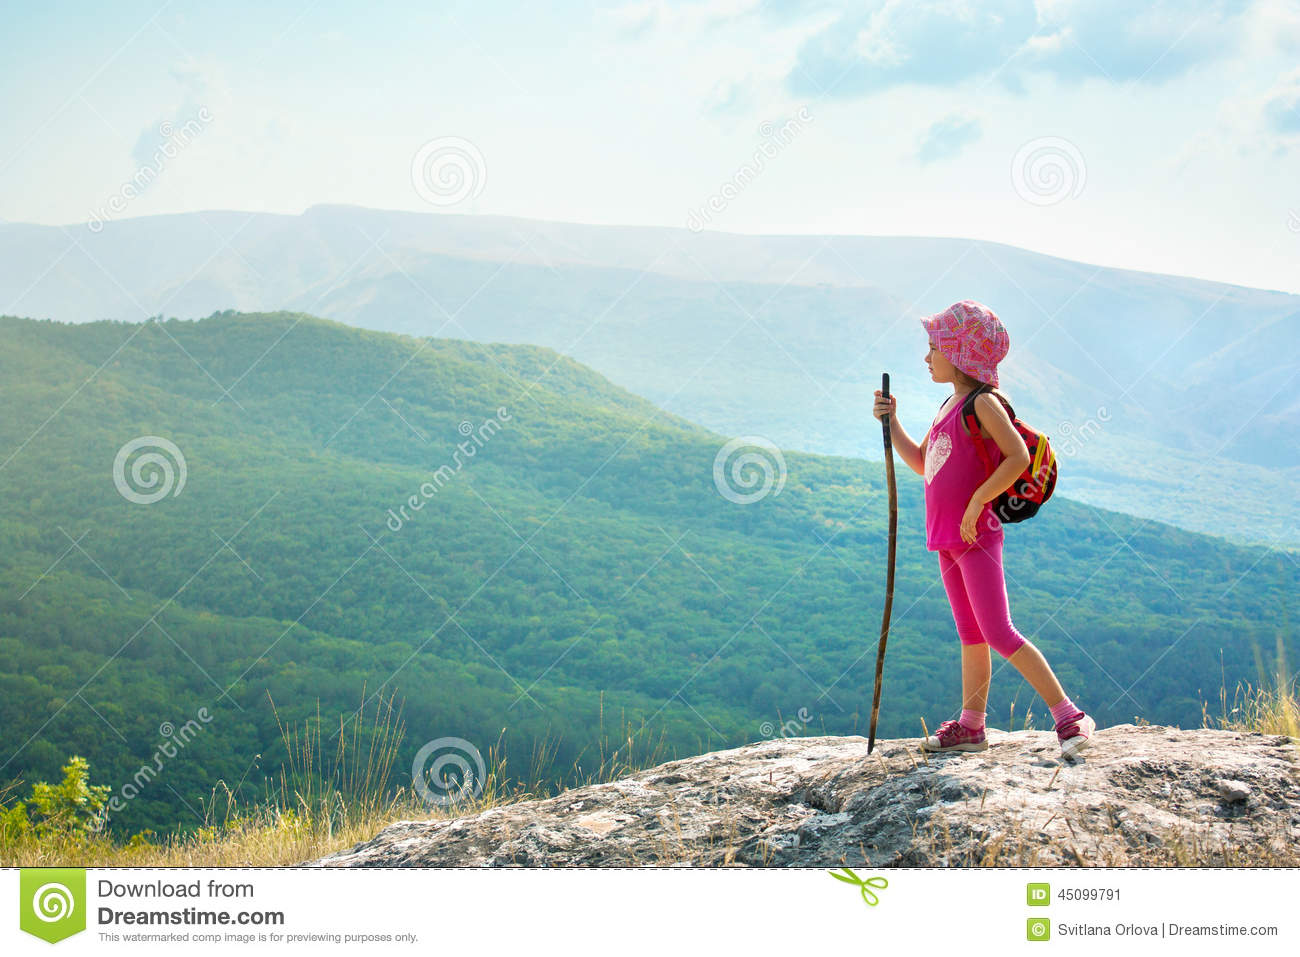 a description of sarah standing at the top of the cliff The easiest way to measure the height of a tree is to fold a piece of paper in half so it forms a right triangle then, hold the triangle so one point faces your eye while the right angle and other point face the tree.